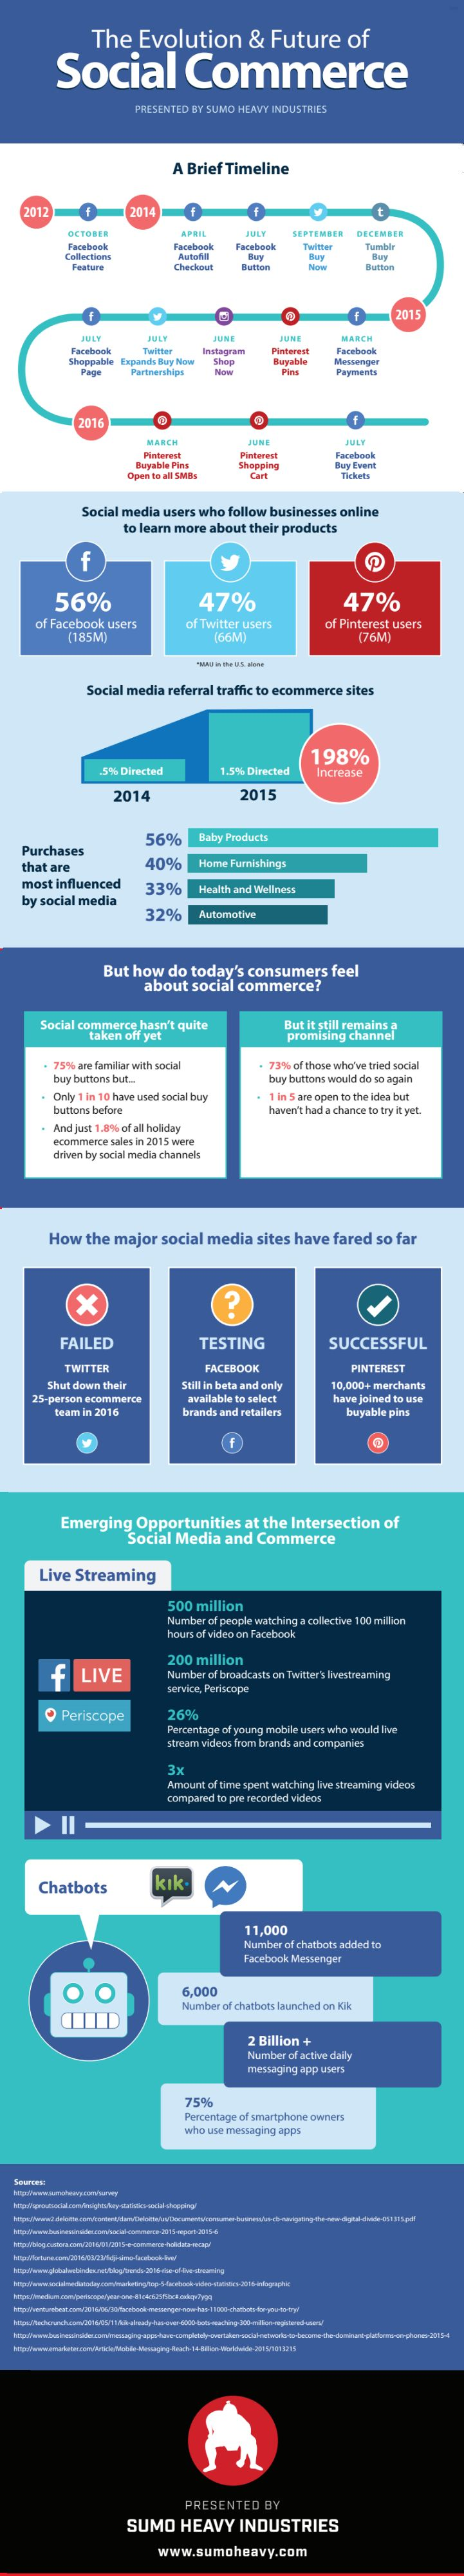 Sumo Heavy Industries has created this new infographic which looks at the history and evolution of social buying. The infographic provides an overview of the current state of social commerce and the winner is Pinterest,  Click on pin for our help.